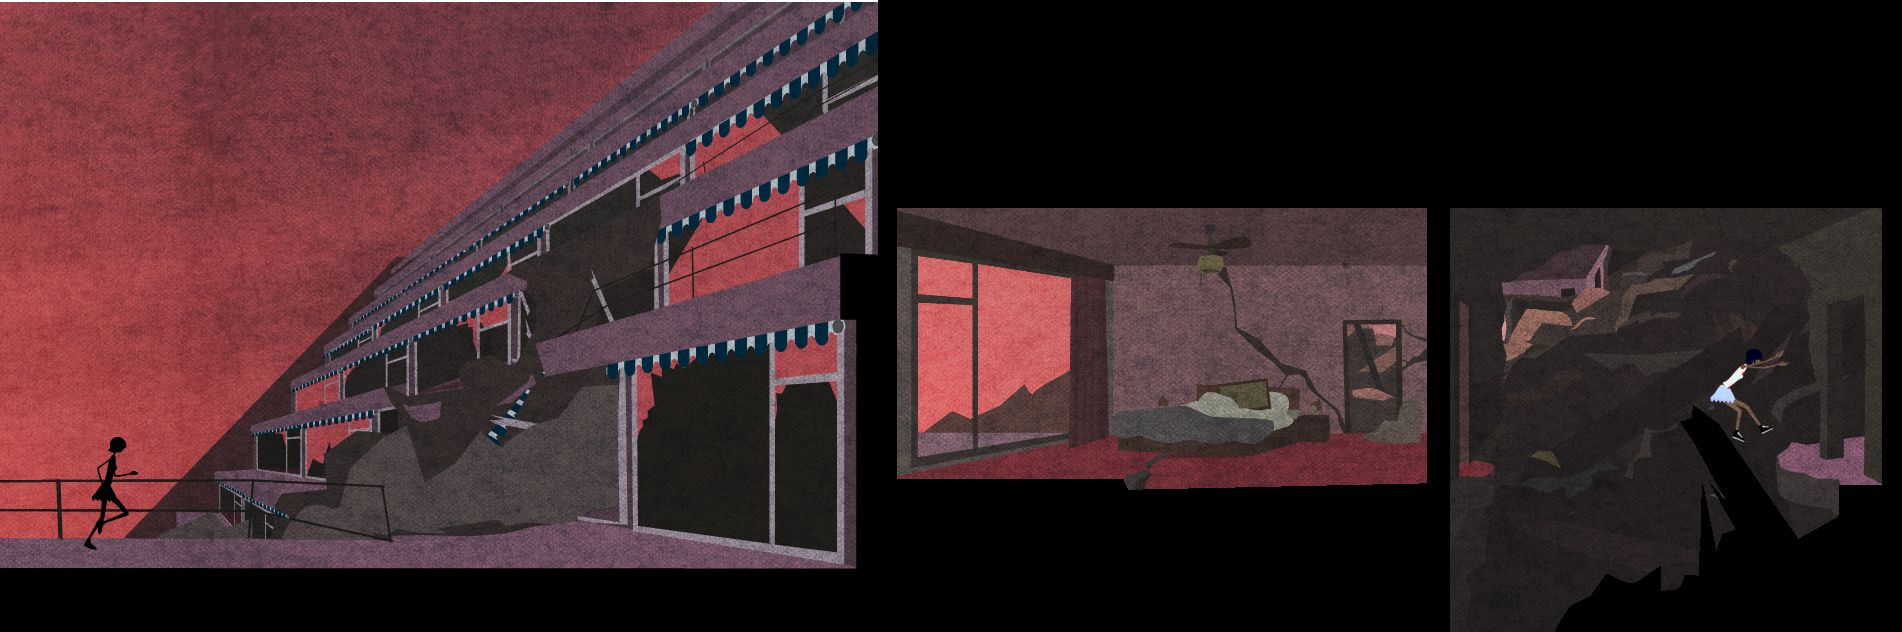 two images of a derelict hotel. left: a view of the outside with Kai running from left to right on a balcony. Right: the view of a devastated hotel room. Kai jumps across a chasm from one side of a corridor to the other.